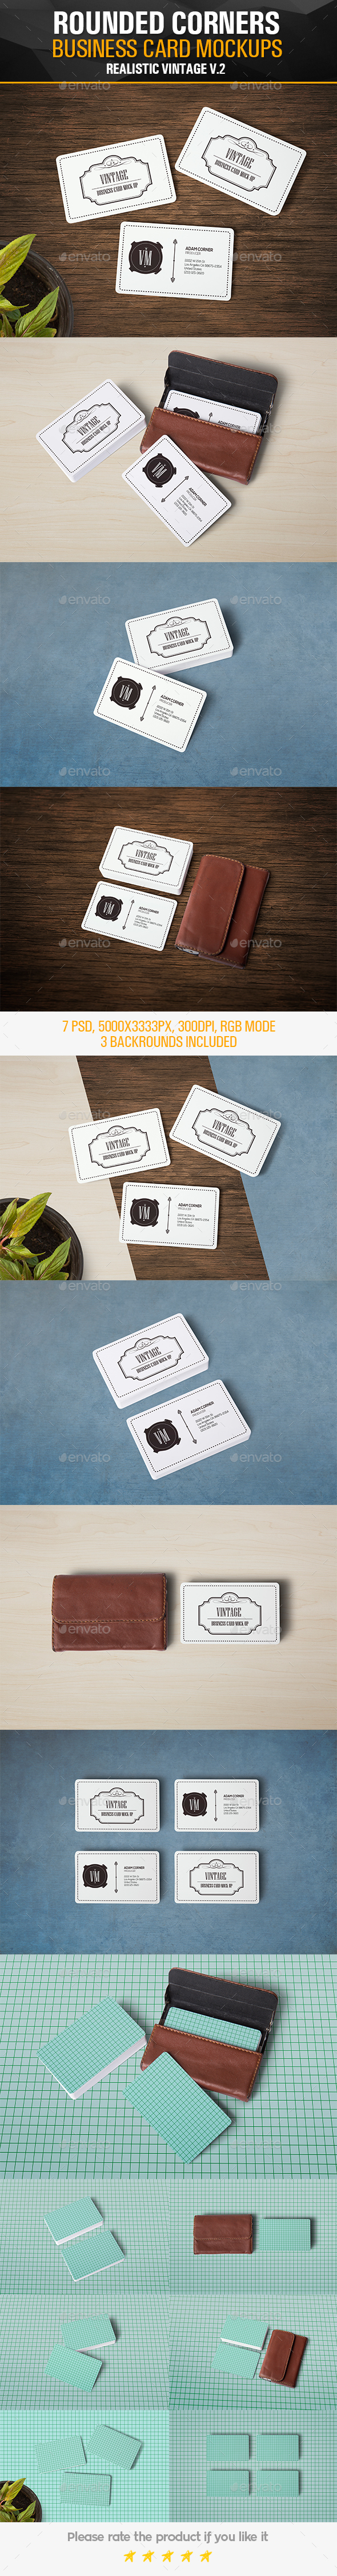 Rounded Corners Realistic Vintage Business Card Mockups - Business Cards Print